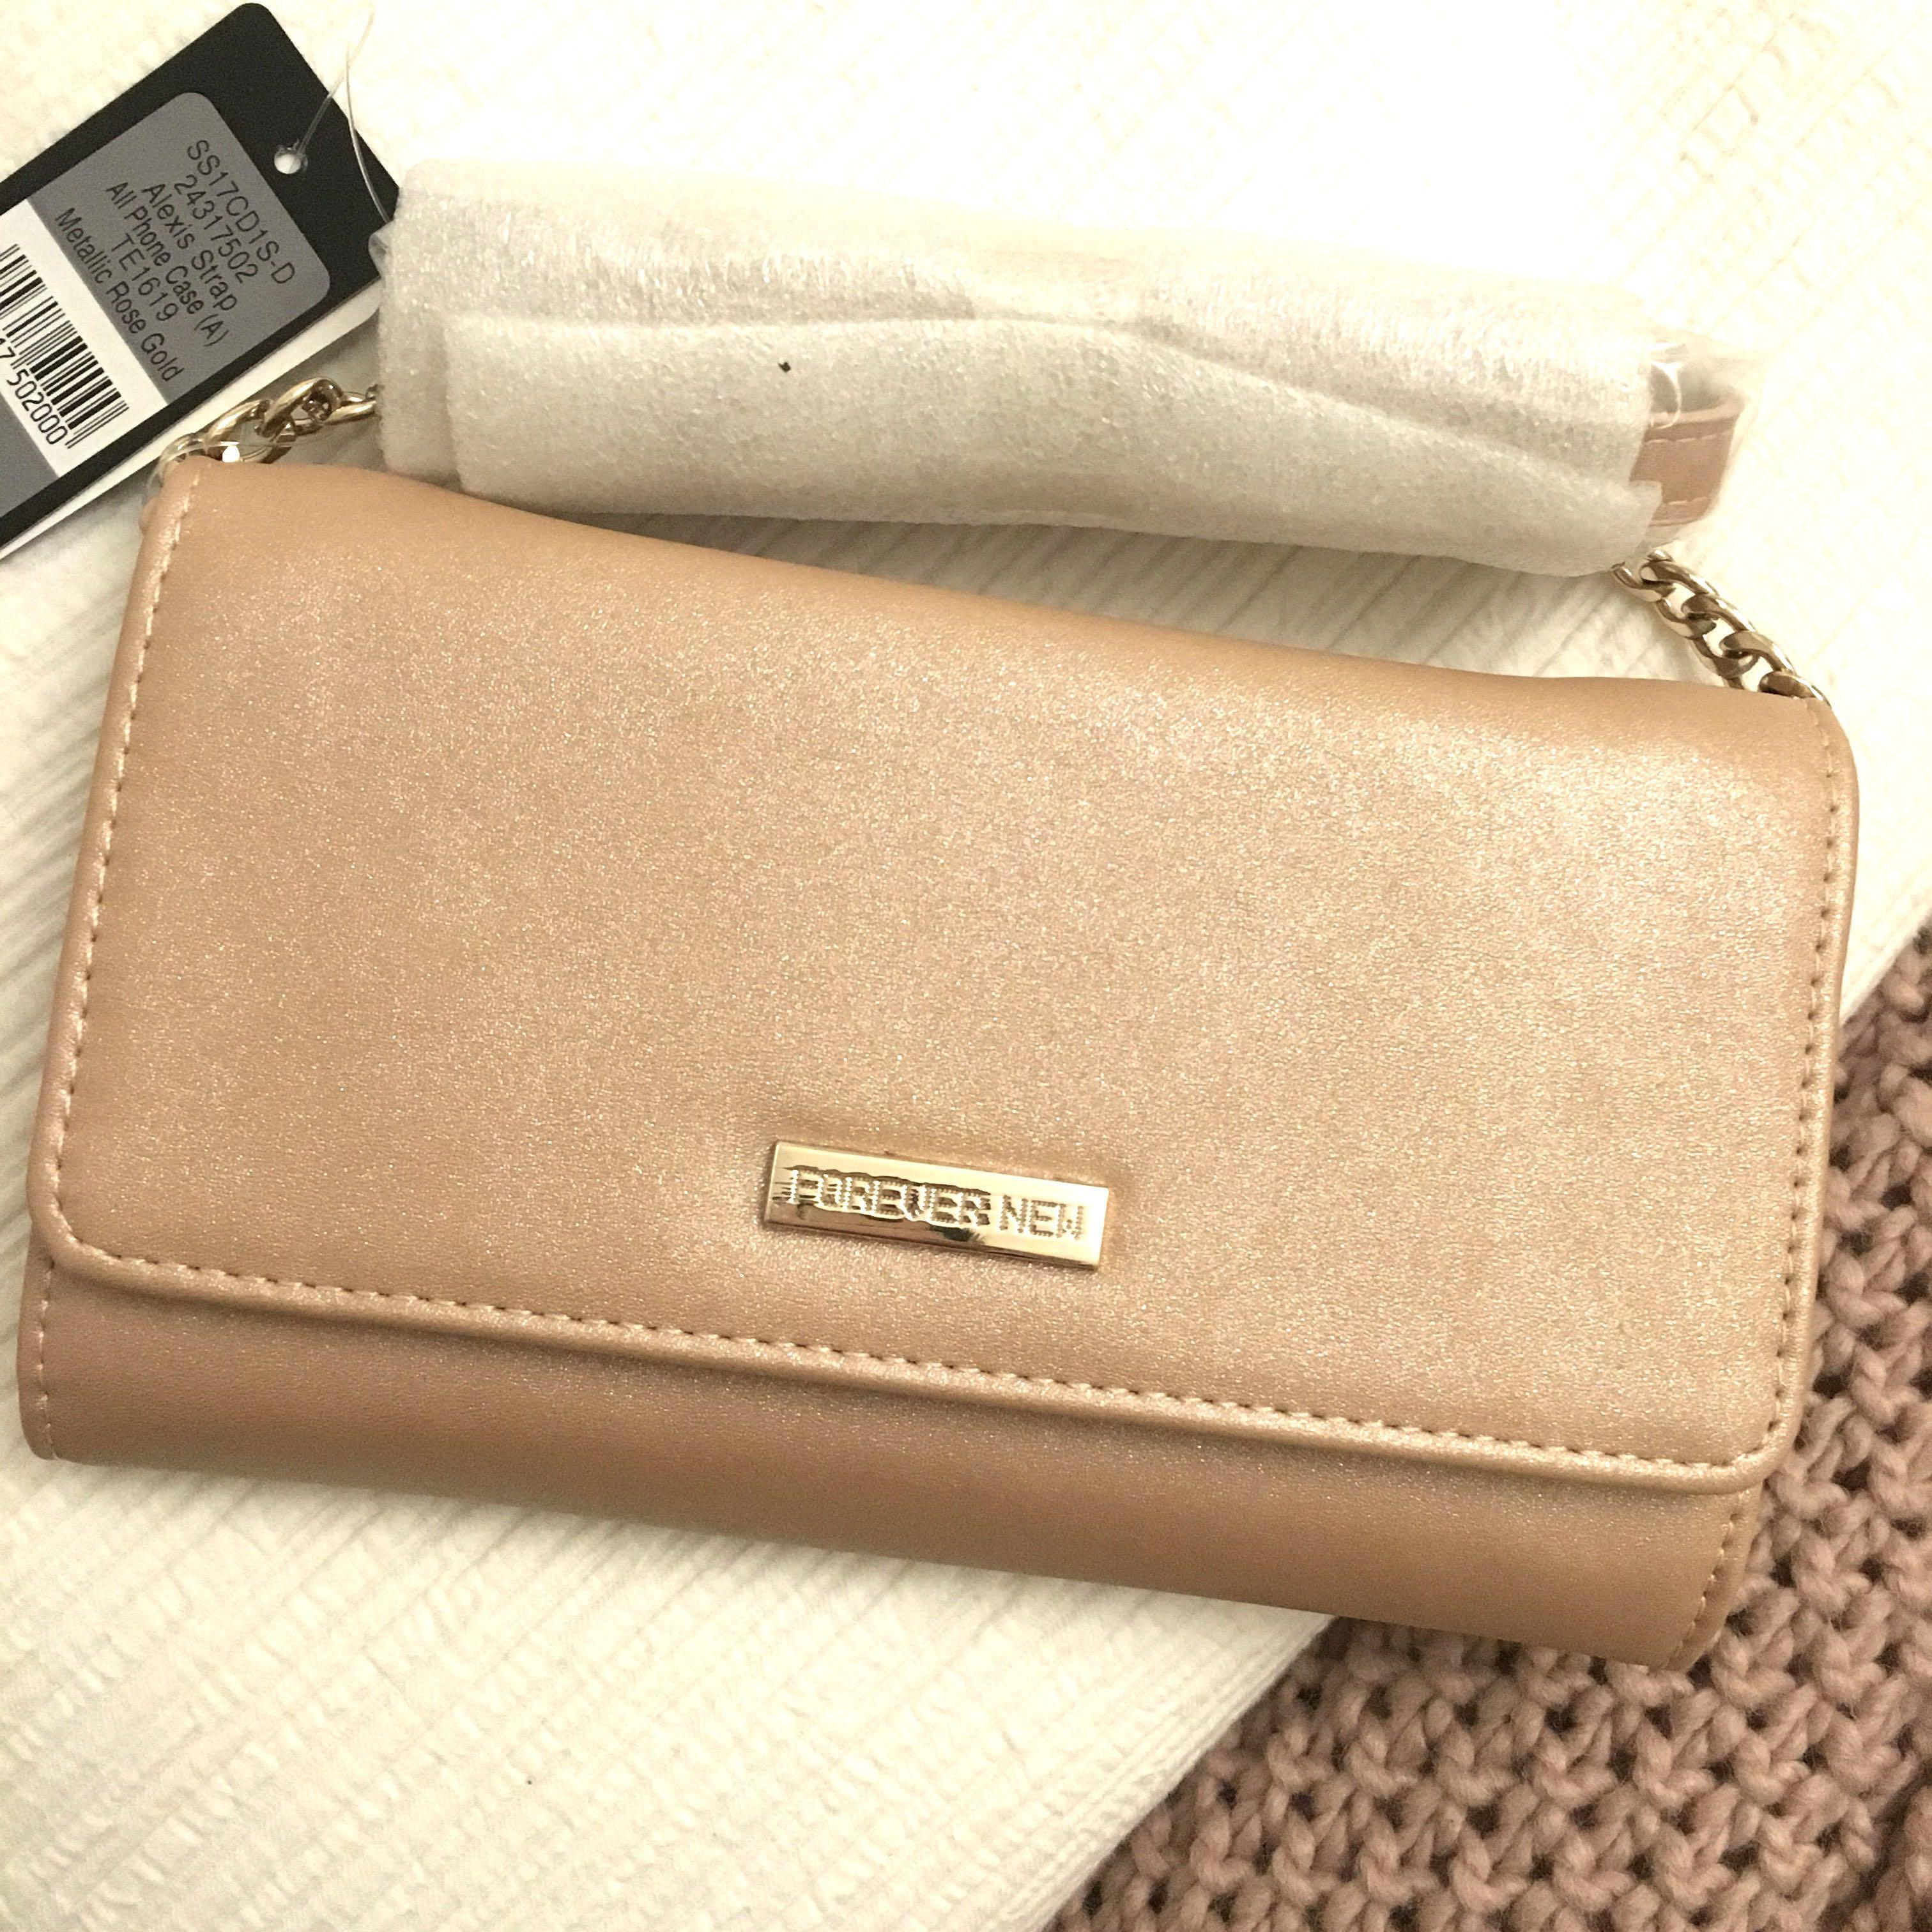 Forever New - All Phone Case / Clutch Bag - BRAND NEW